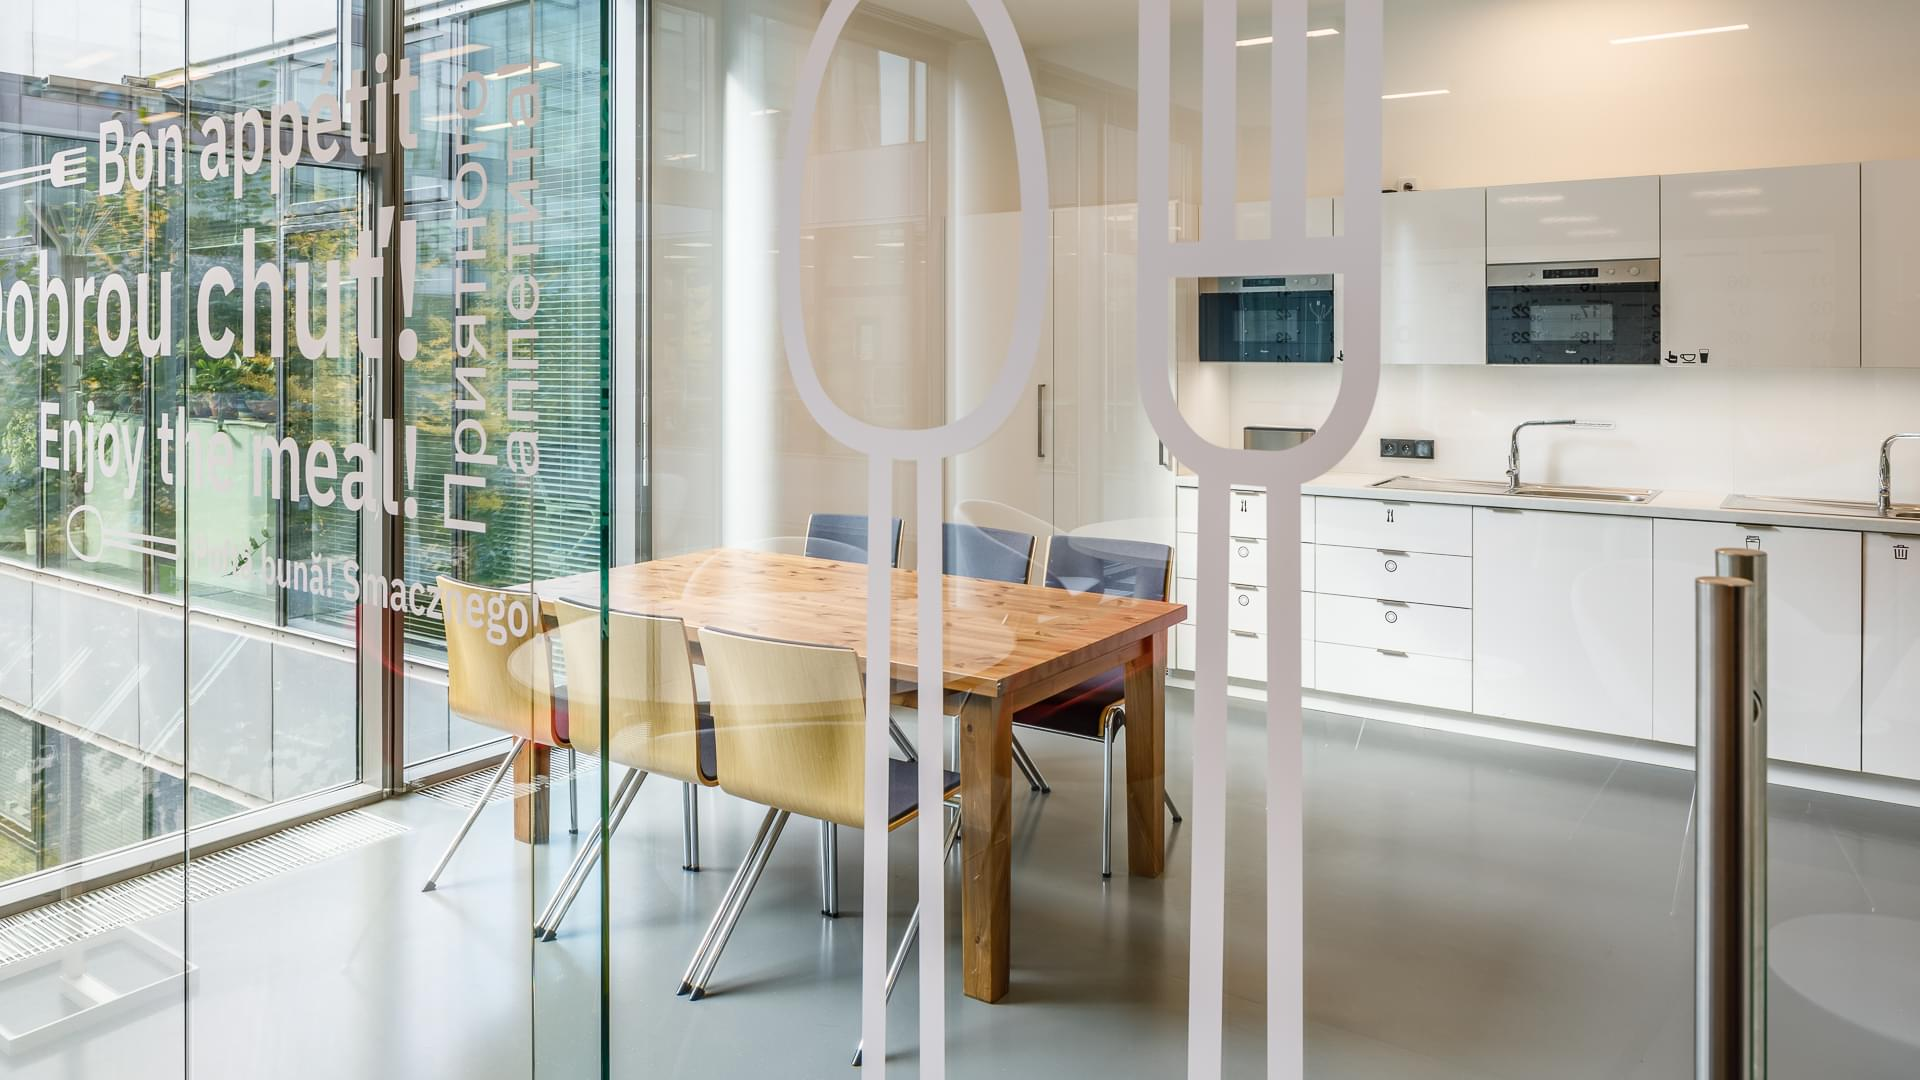 light kitchen-wallpaper-to-glass-glazed-space-CAPEXUS-office-design office-office CAPEXUS-IBM-IBM office